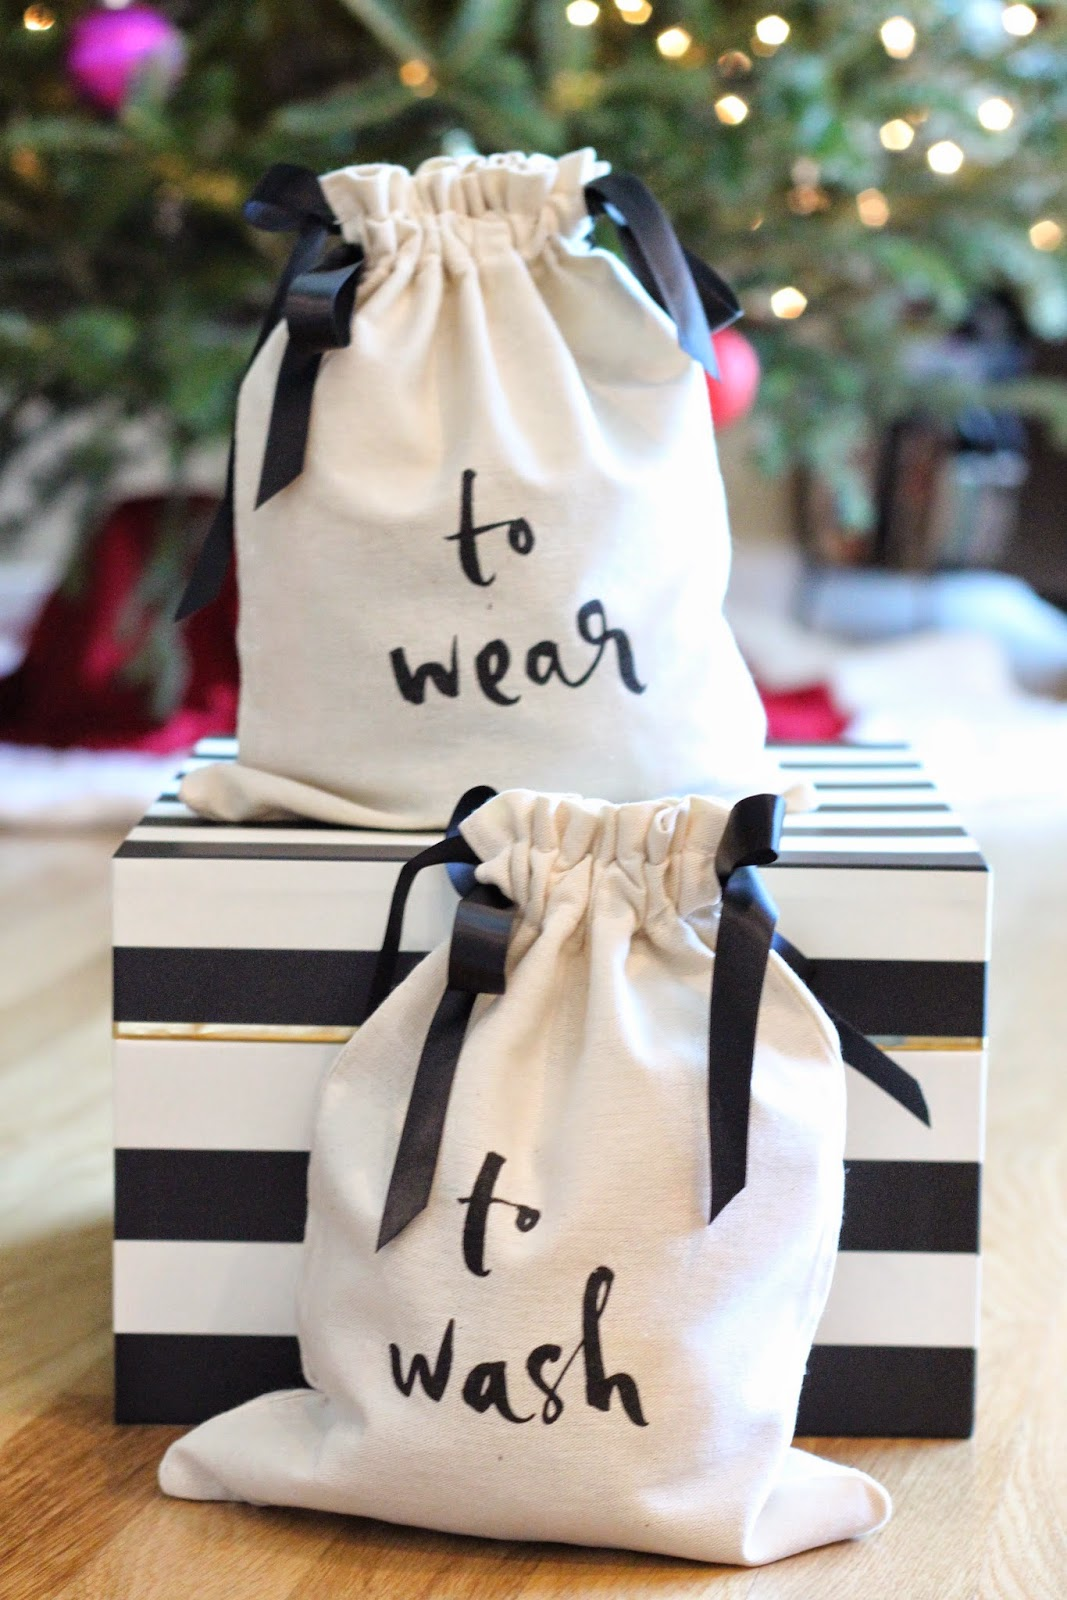 Kate Spade New York: Gifts for the Organized - Medicine & Manicures